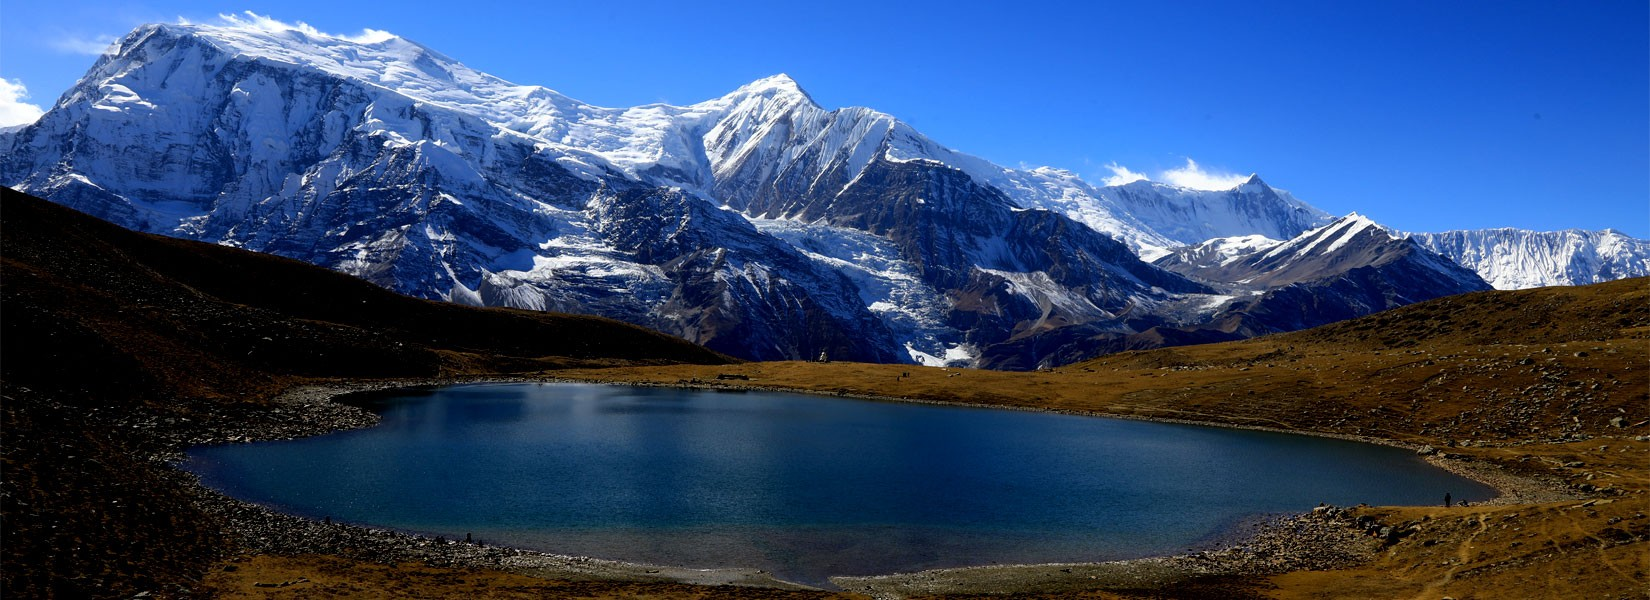 Ice Lake in Annapurna Circuit Trek